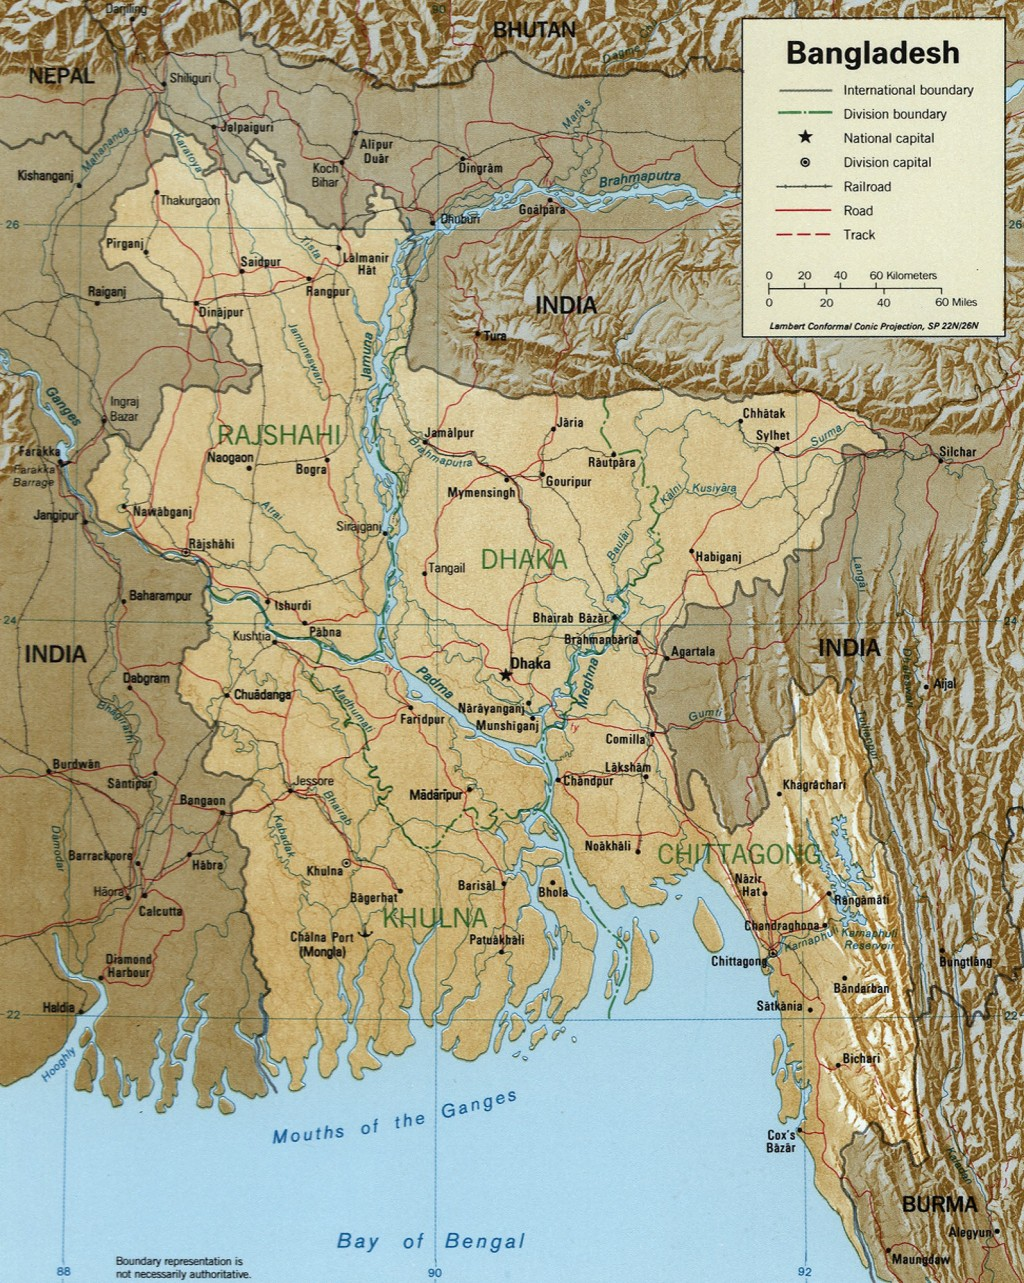 005 Essay On Rivers Of Bangladesh Example Loc 1996 Map Breathtaking Importance In Large